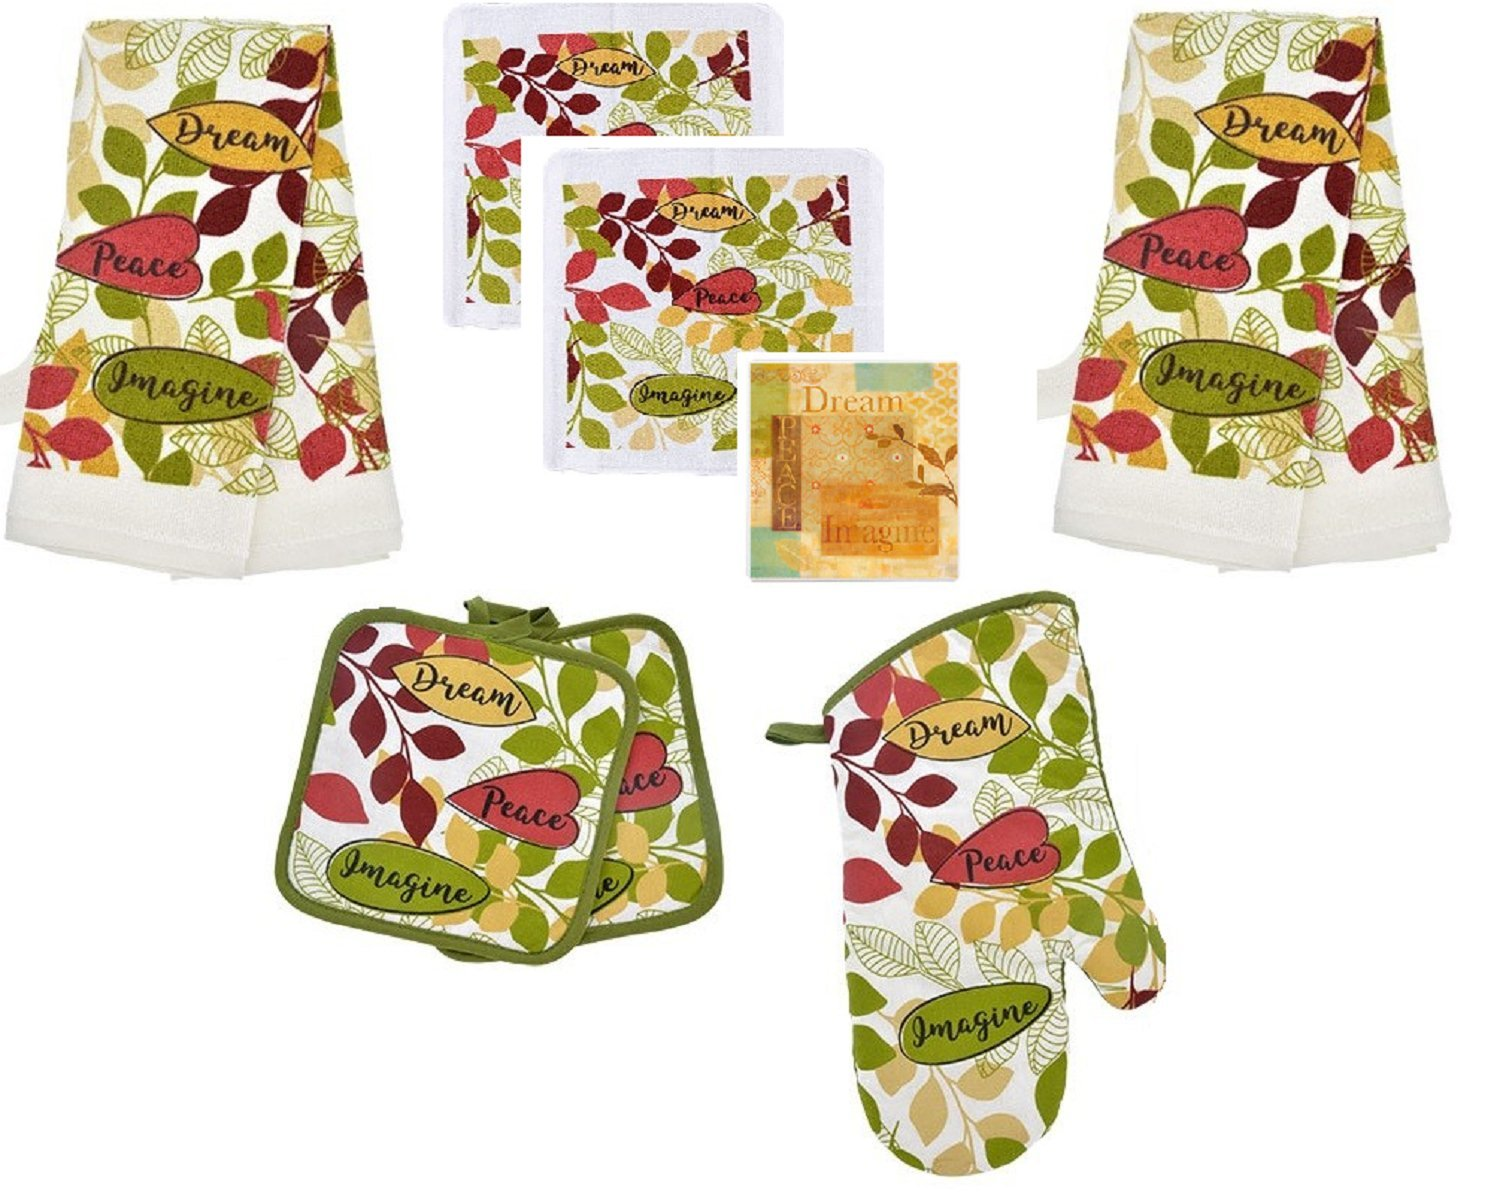 Home Collection Dream Peace Imagine 8 Piece Kitchen Set - 2 kitchen Dish Towels, 2 Pot Holders, 2 Dish Cloths, Oven Mitt and Bonus Matching Coaster